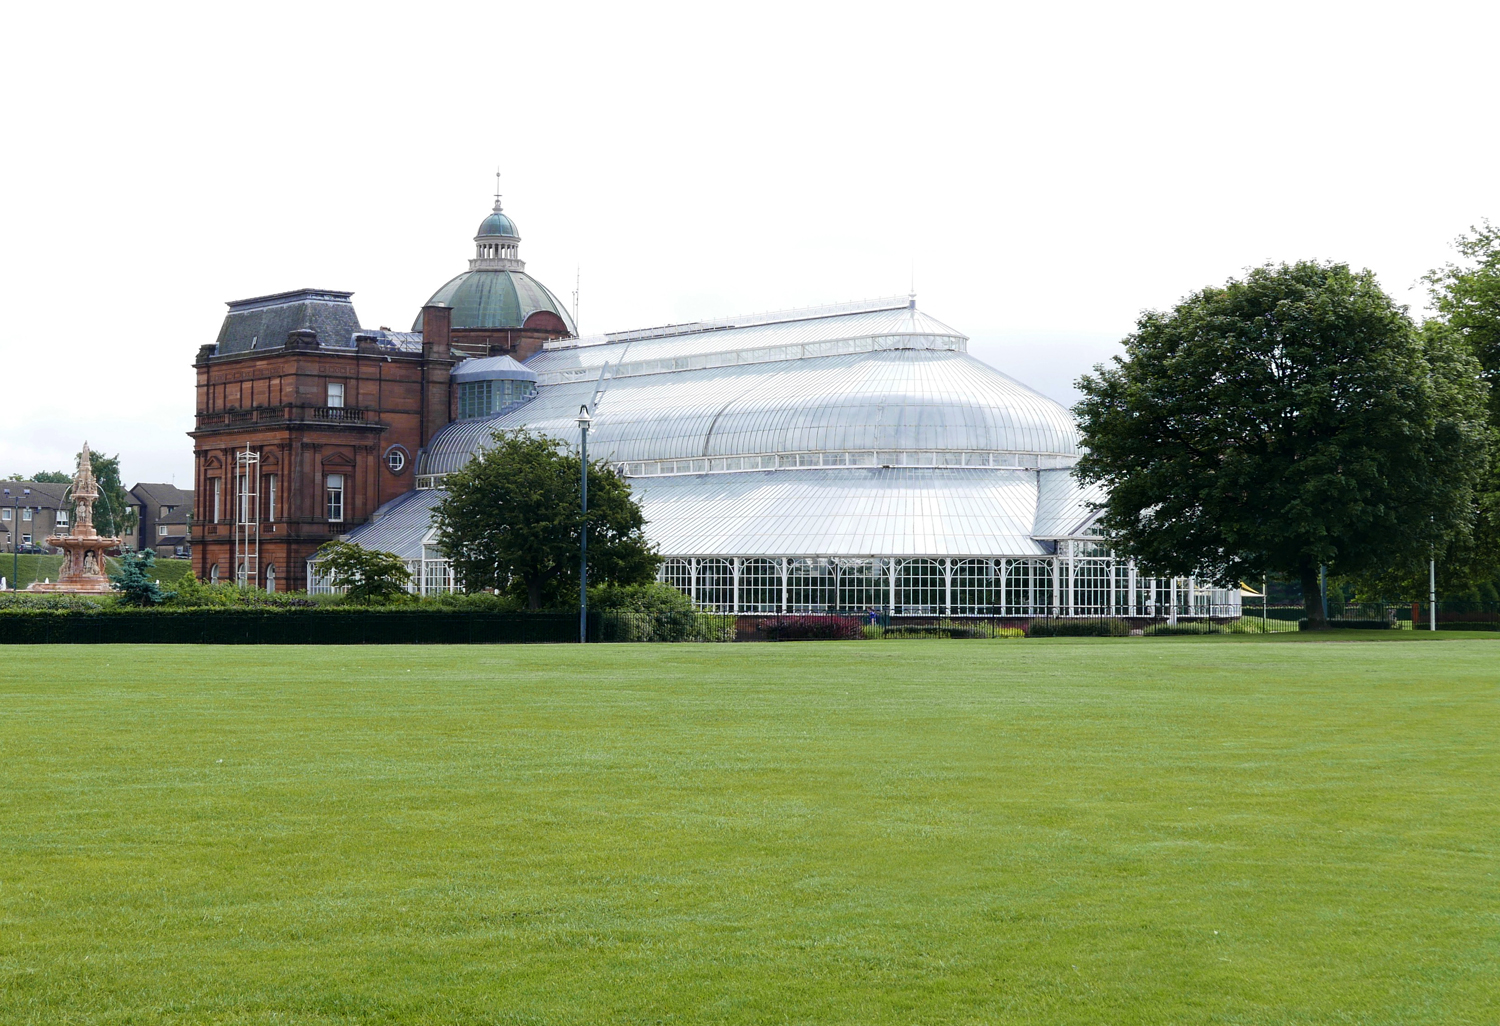 The People's Palace and Winter Garden, Glasgow green